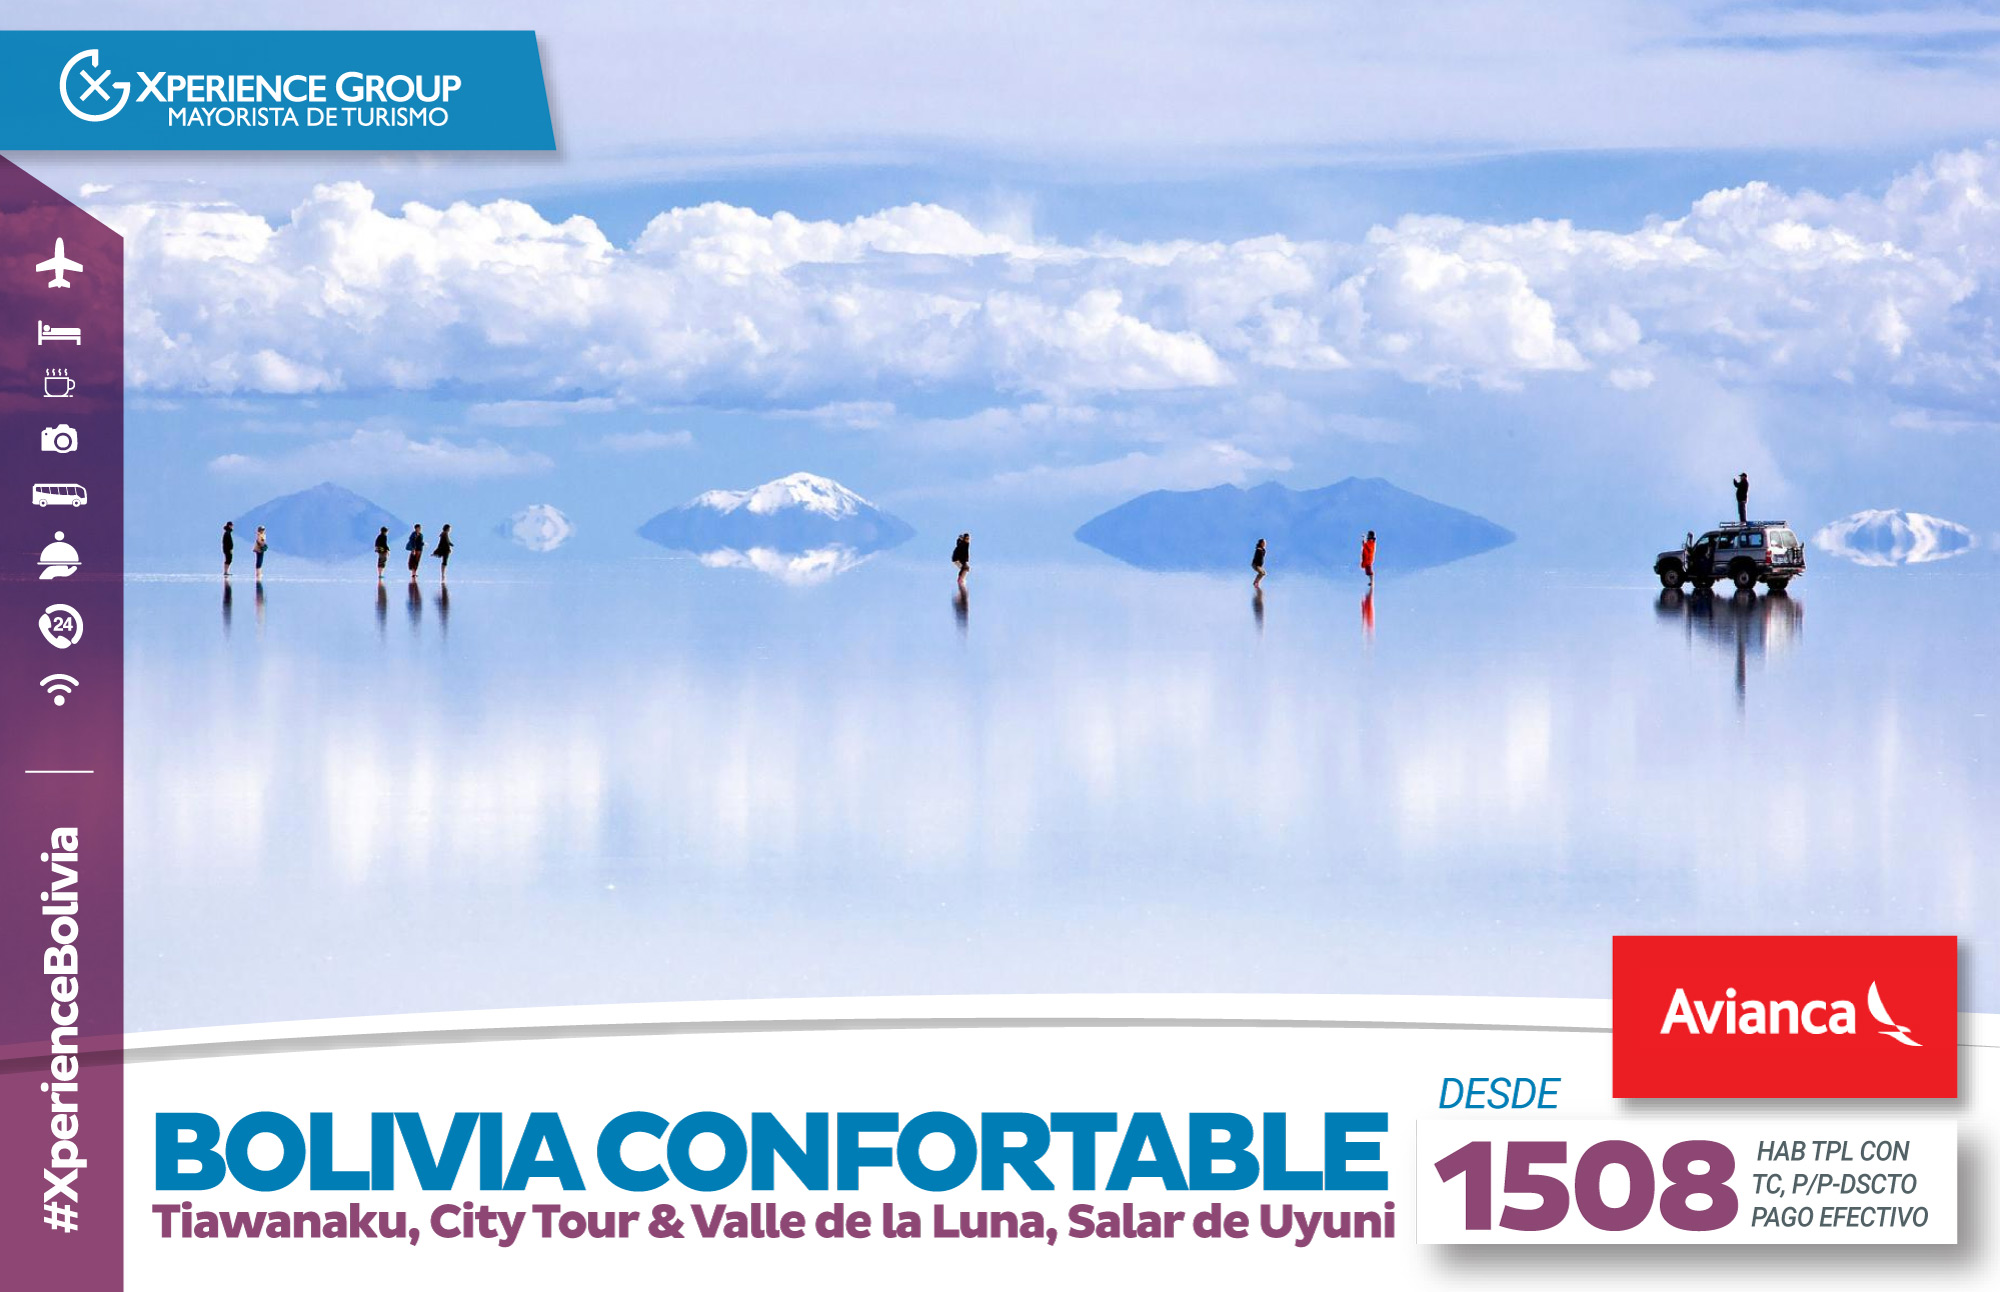 BOLIVIA CONFORTABLE